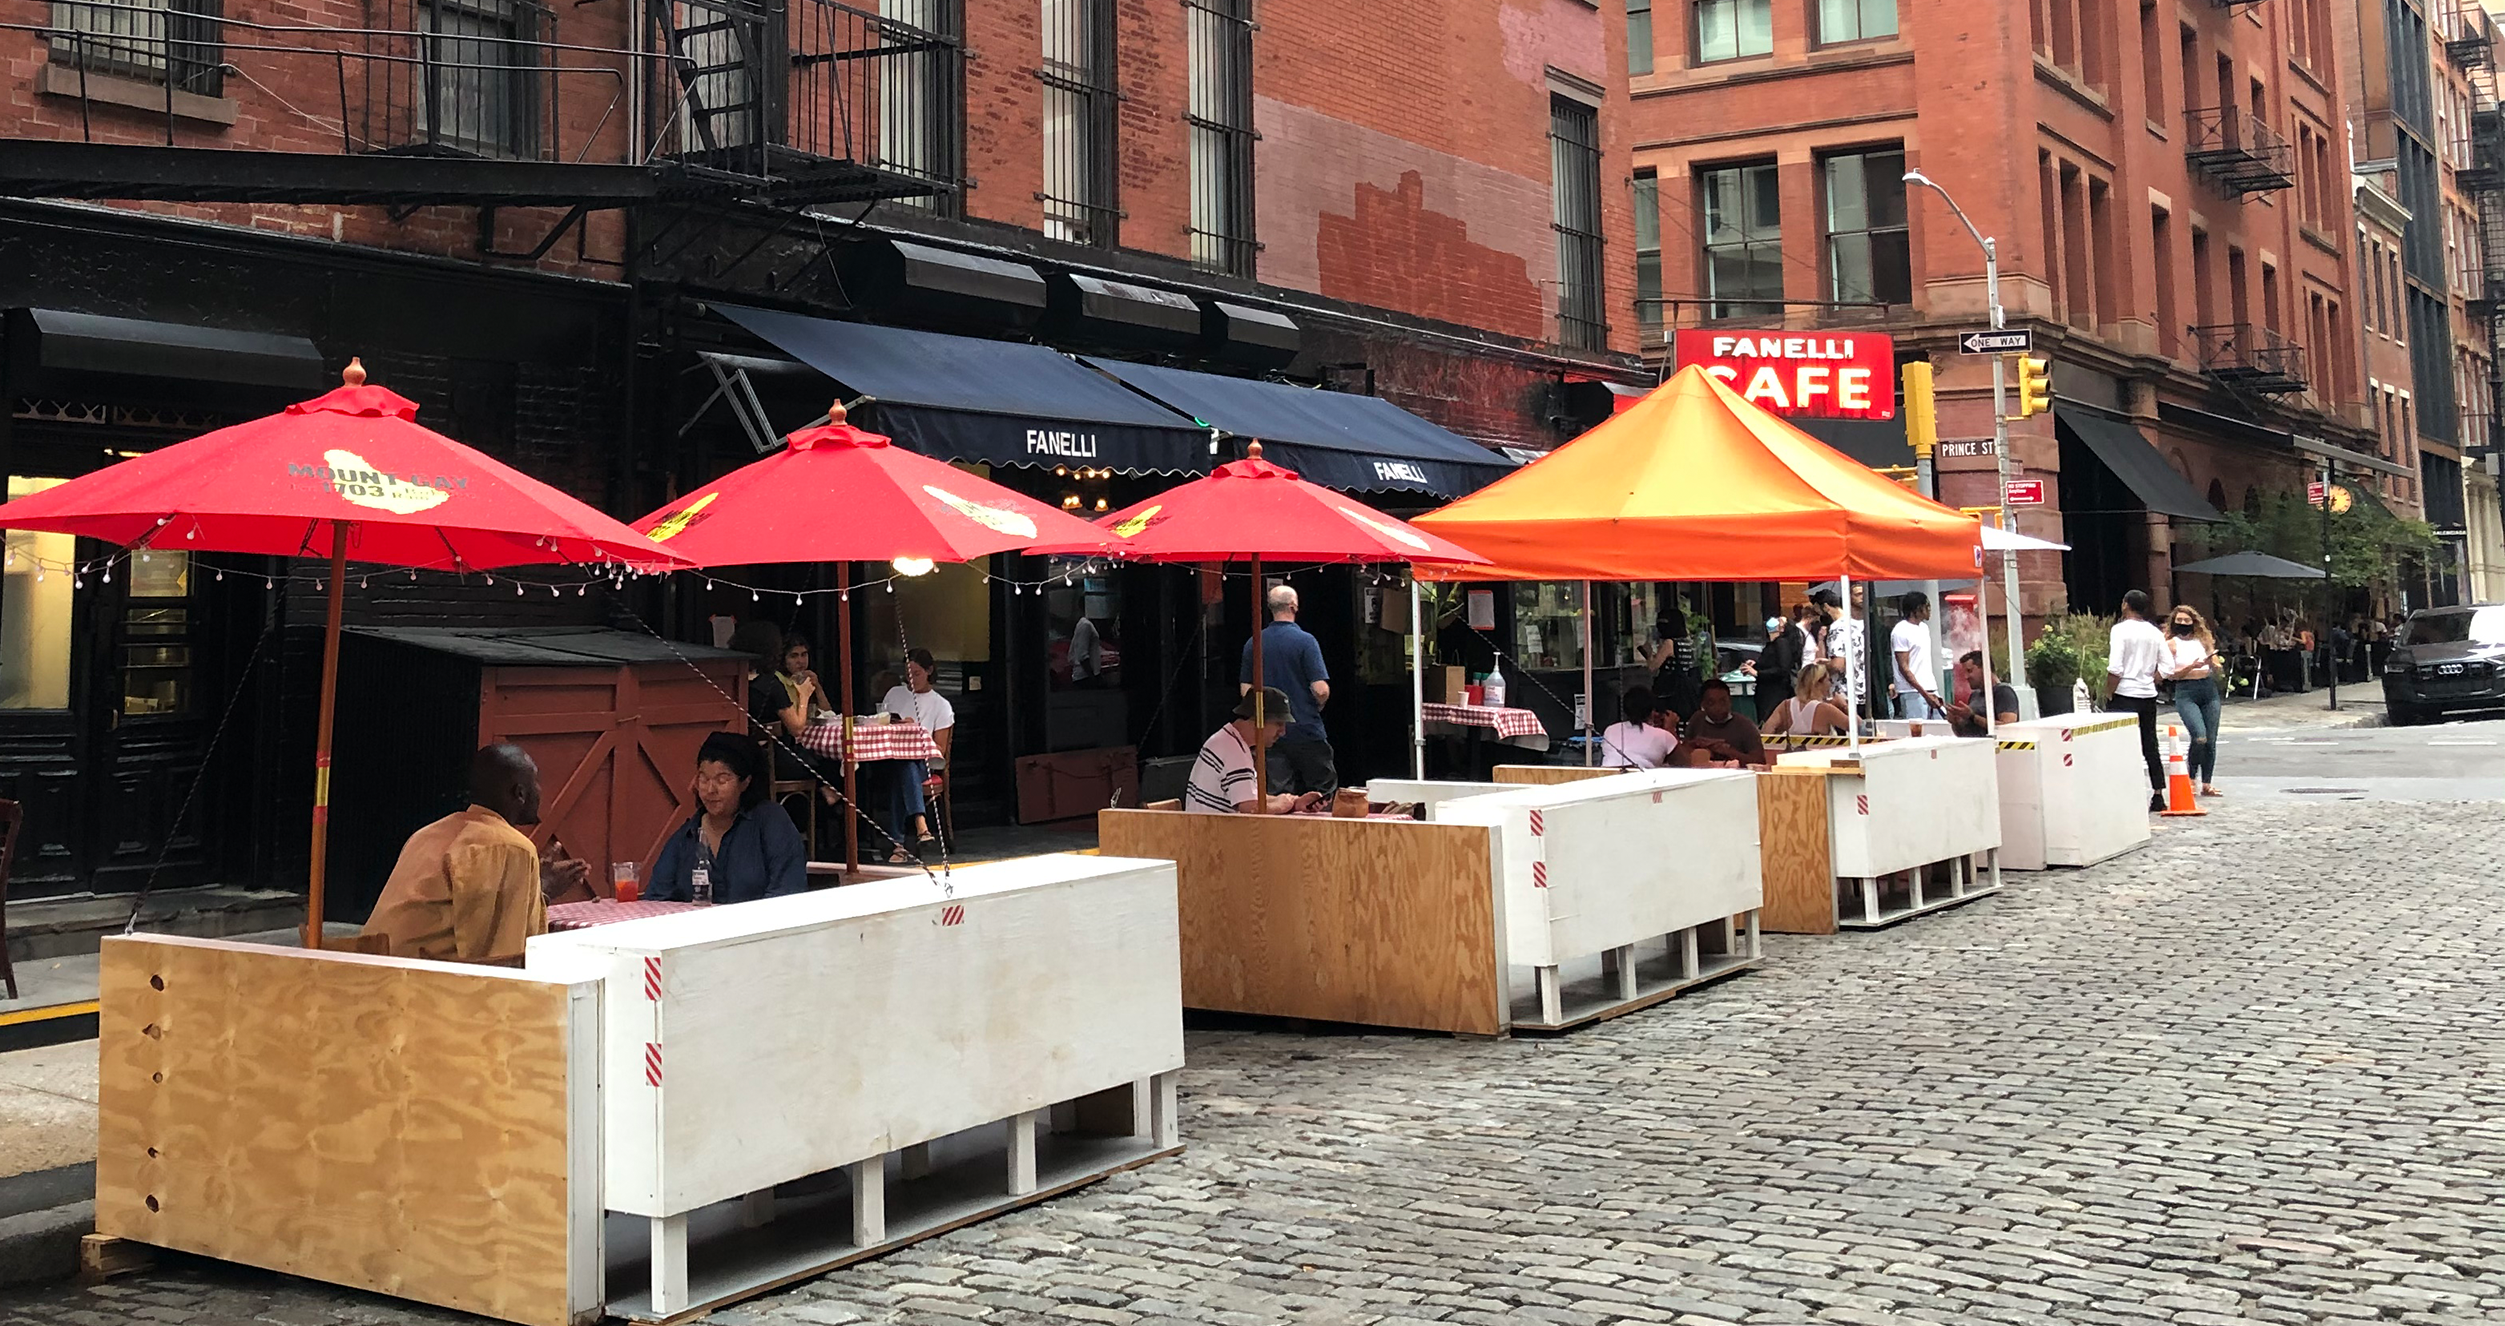 Outdoor dining in NYC during COVID19